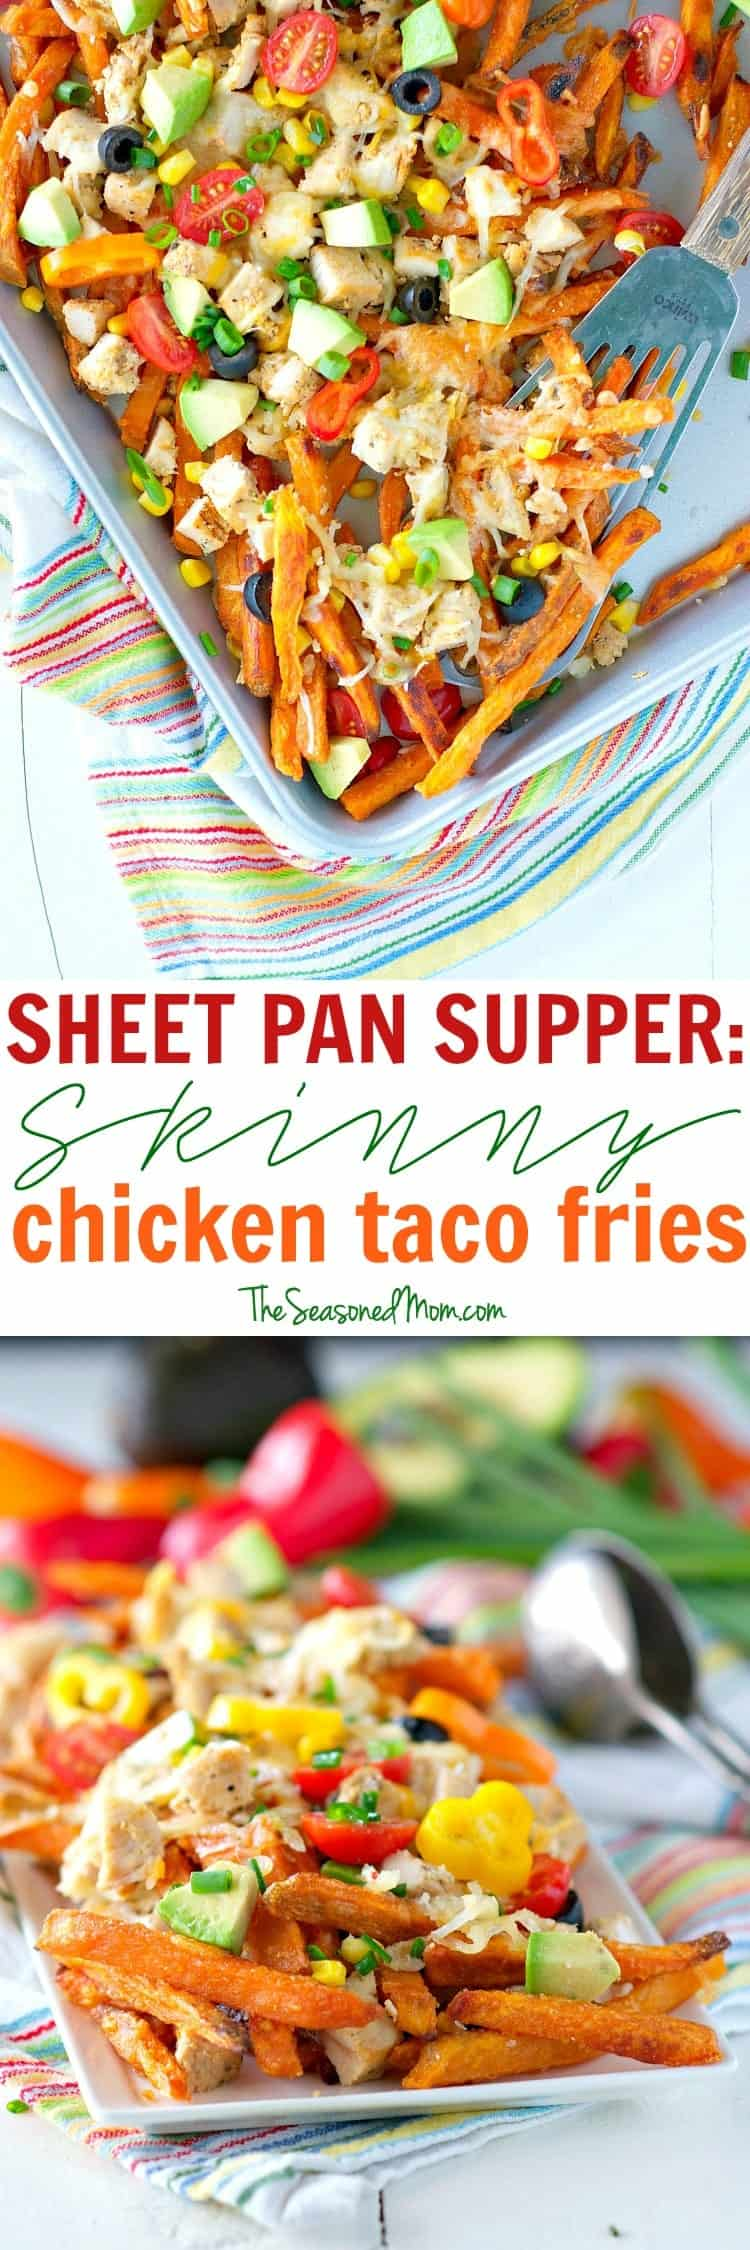 Make a quick and easy weeknight meal for your family with this Sheet Pan Supper: Skinny Chicken Taco Fries! It's a healthy dinner that only requires about 5 minutes of prep time, and the clean-up for this one-dish meal is even faster!